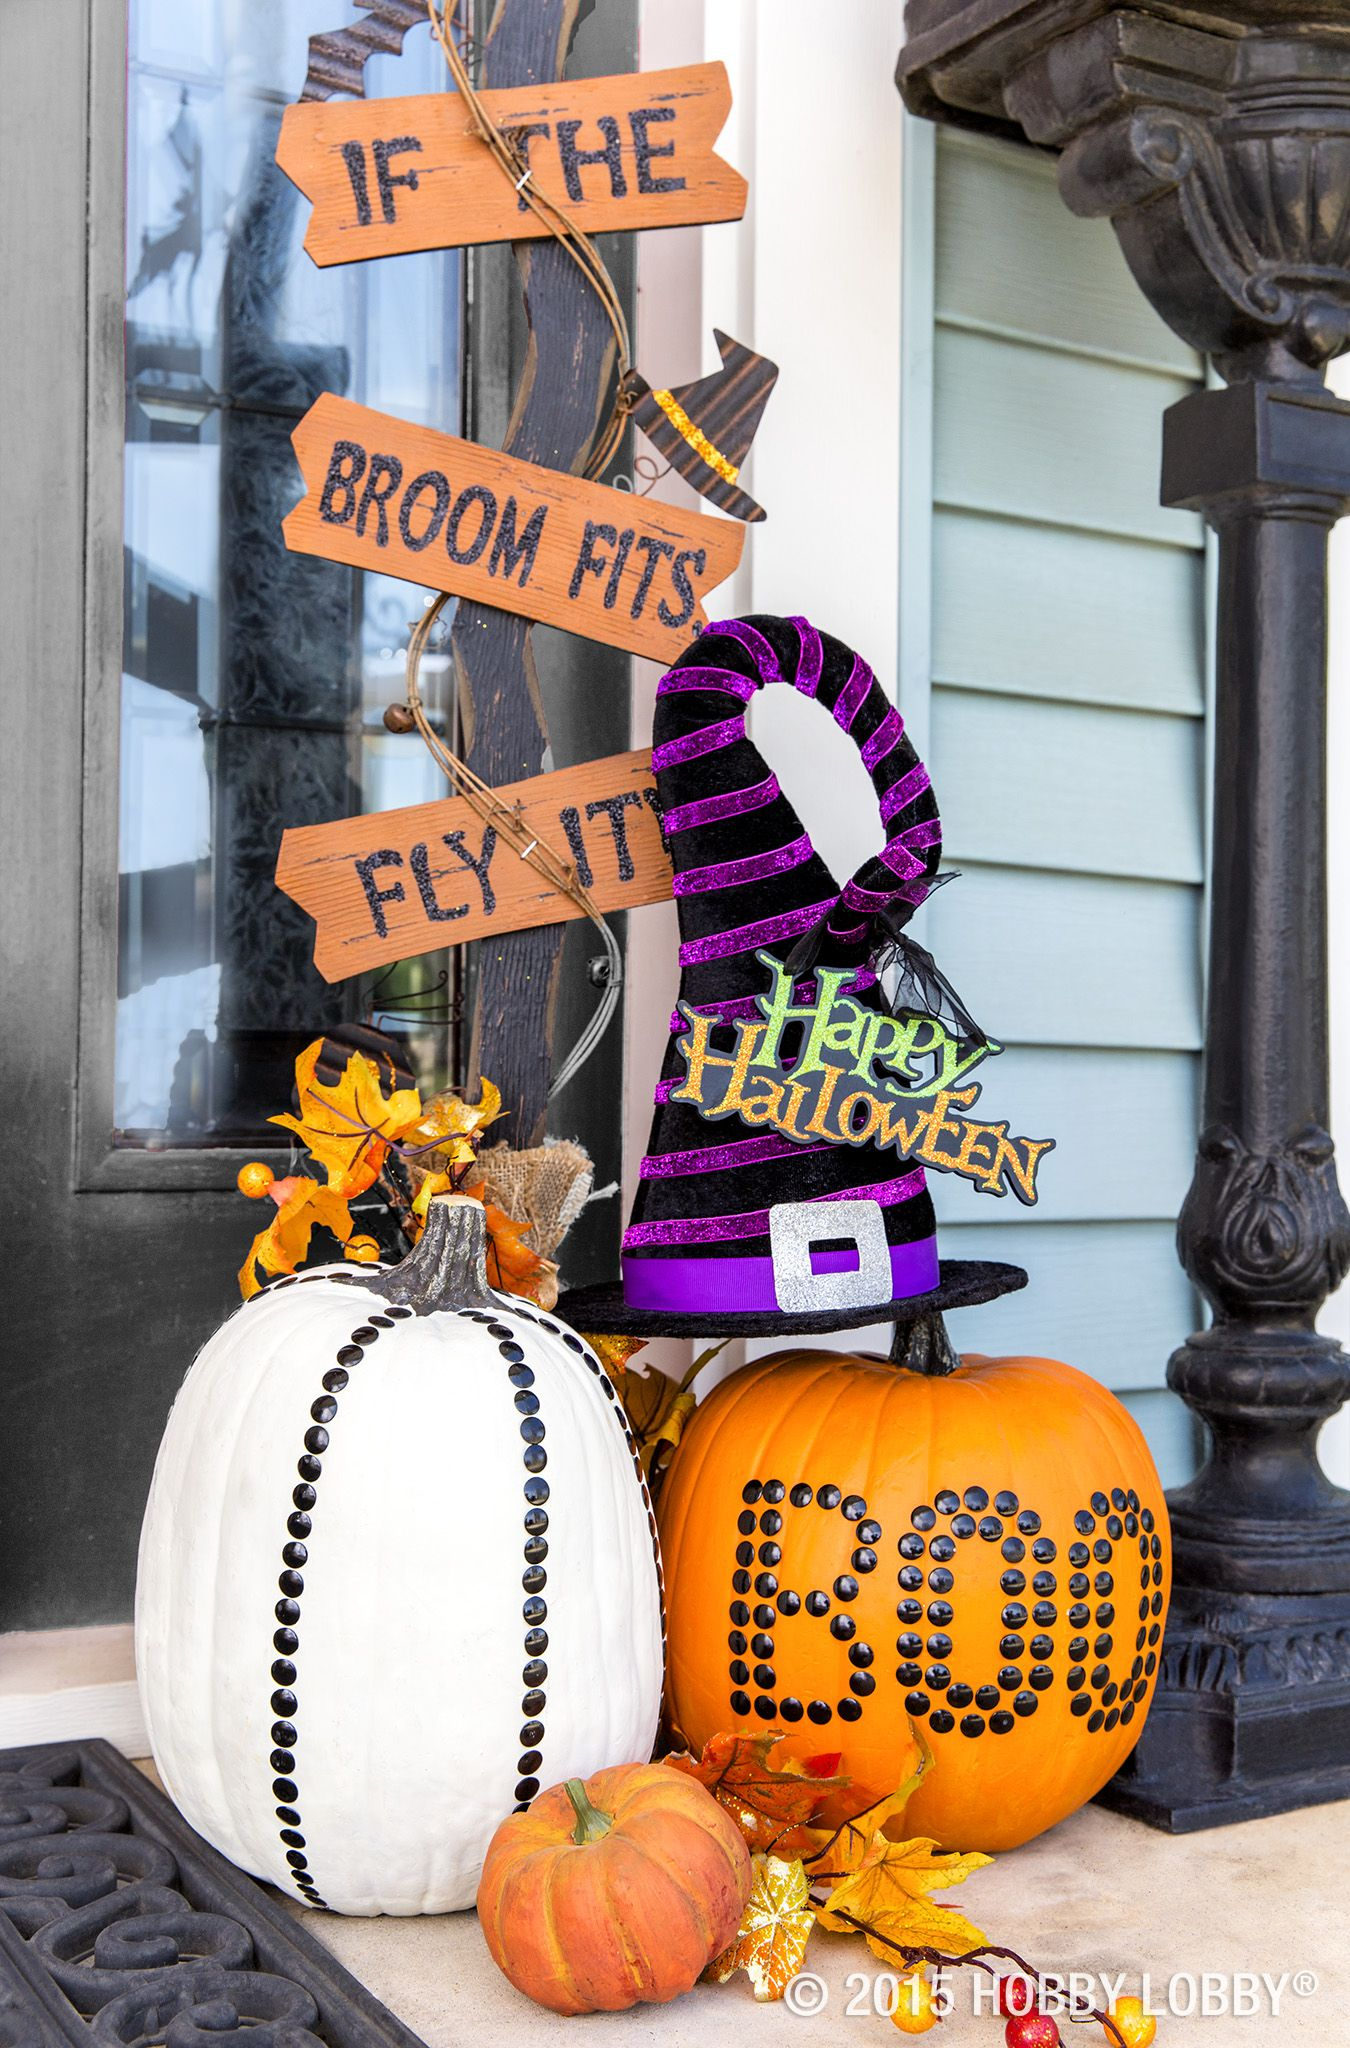 Give your Halloween decor a face-lift with spooky signs, studded - Hobby Lobby Halloween Decorations